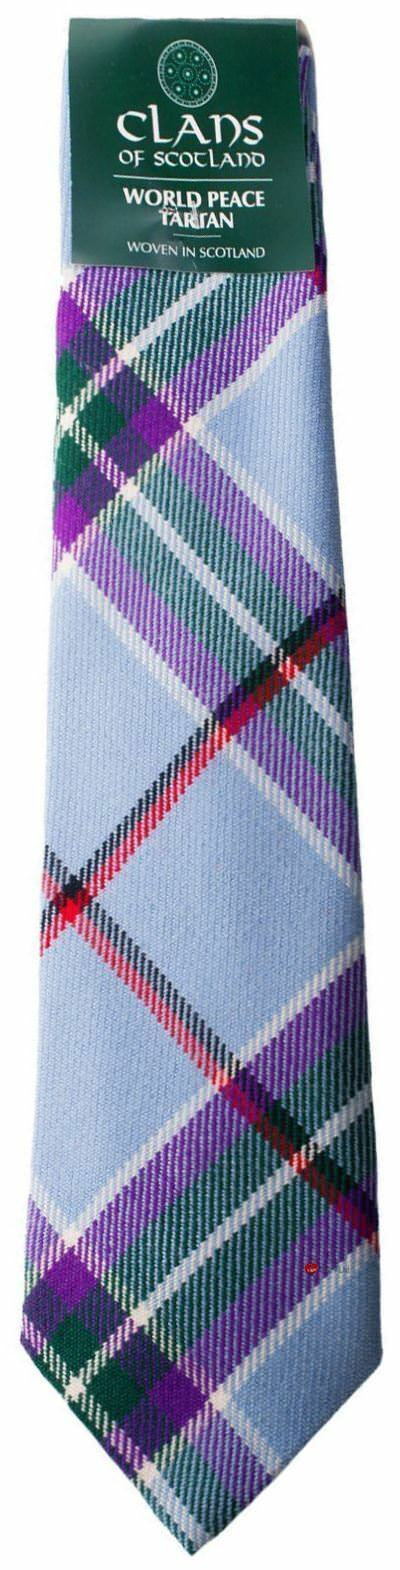 World Peace 100% Wool Scottish Mens Tartan Tartan Tartan Tie | Nicht so teuer